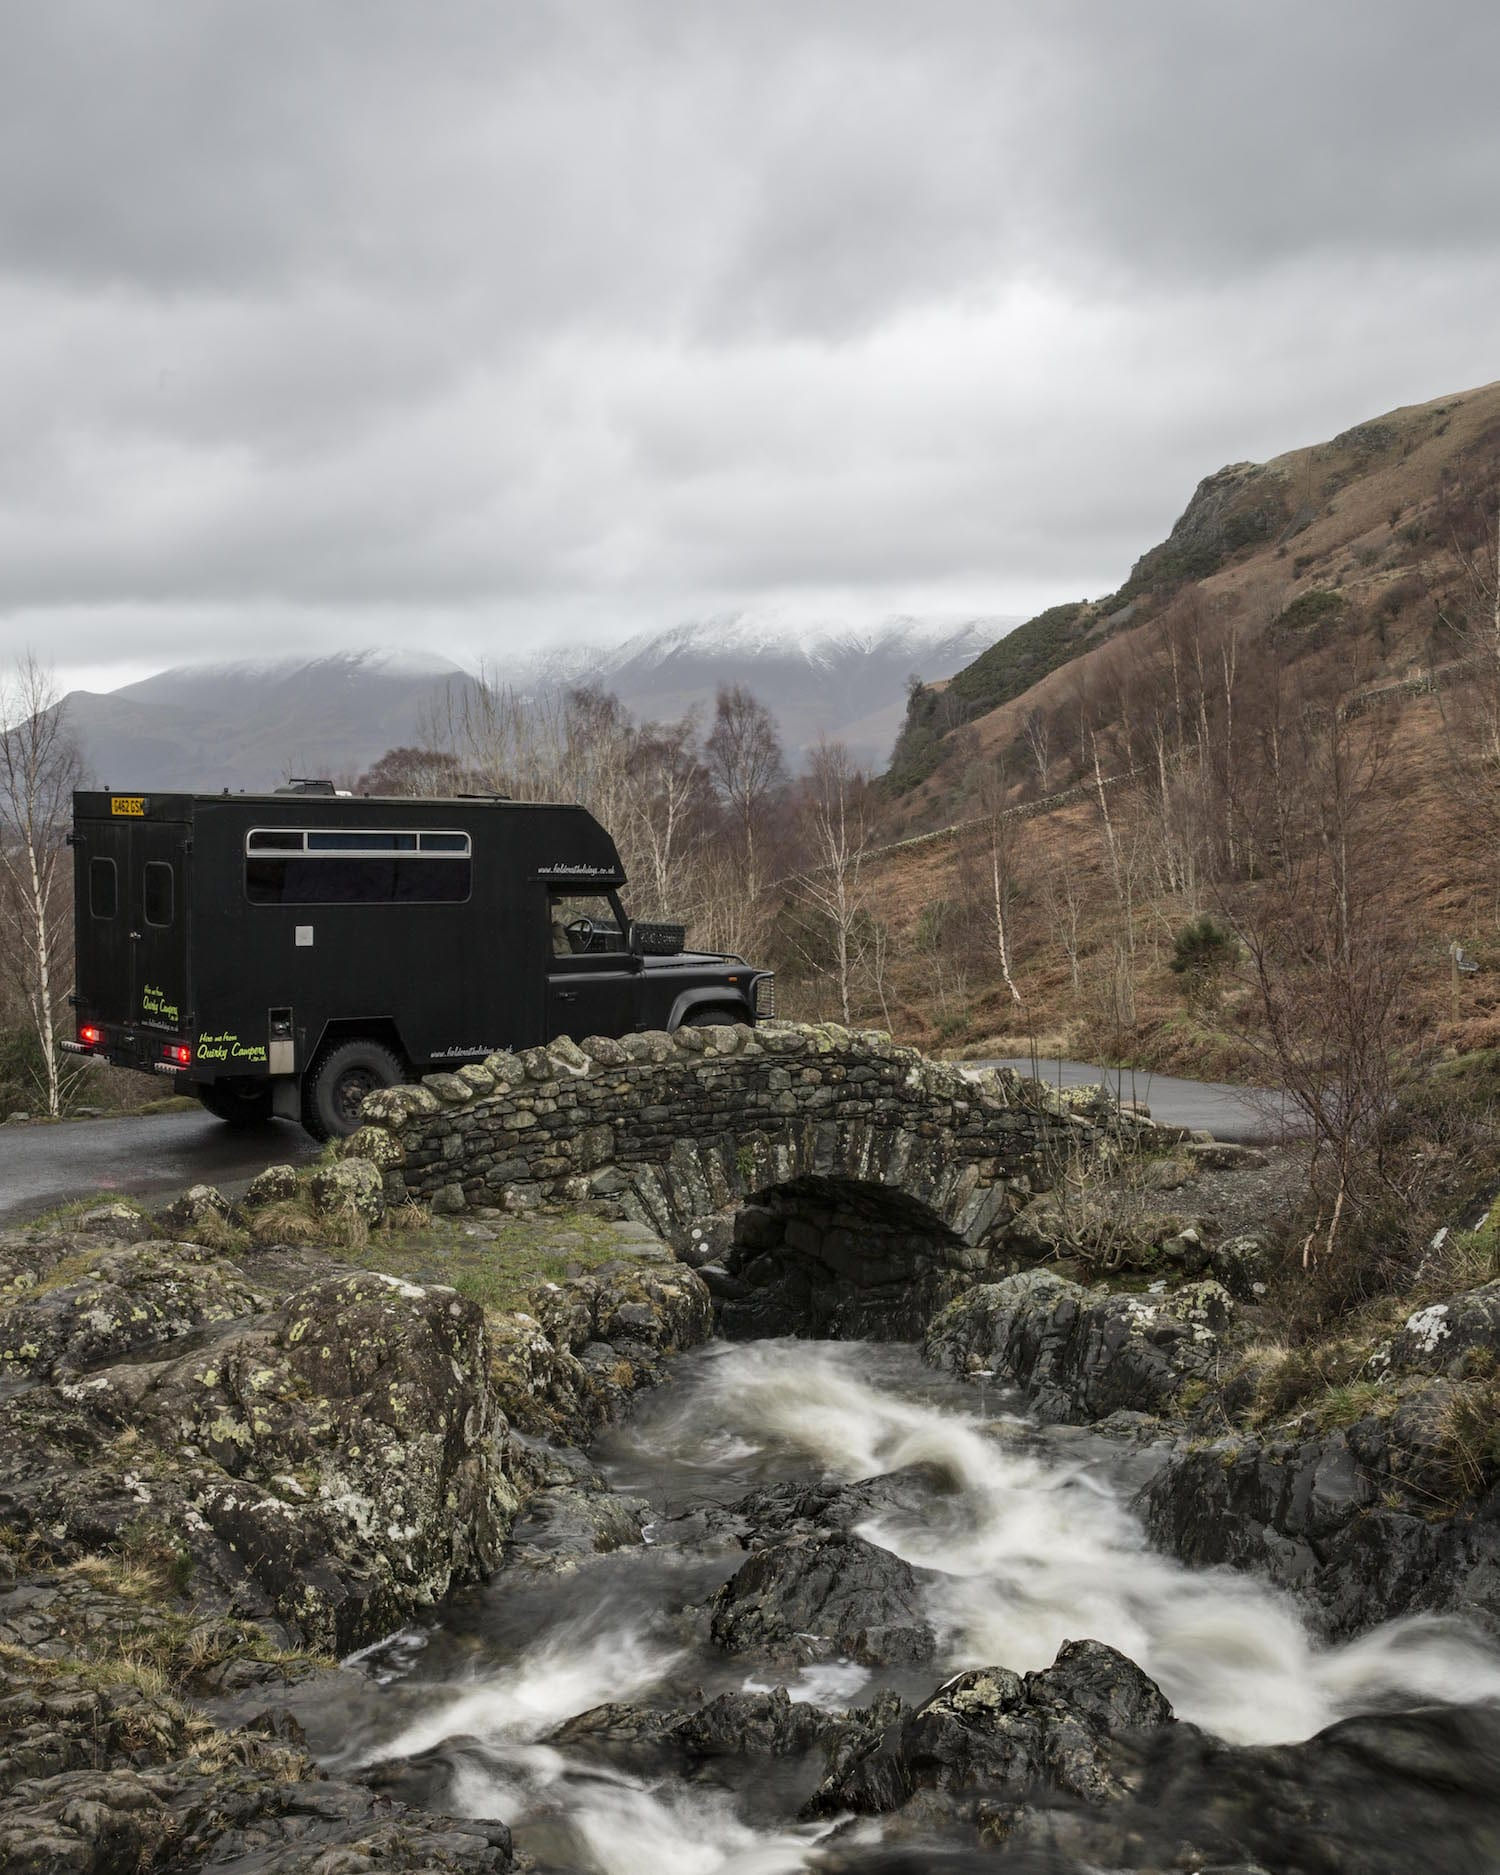 A campervan crossing a tiny stream bridge on an adventure holiday in UK